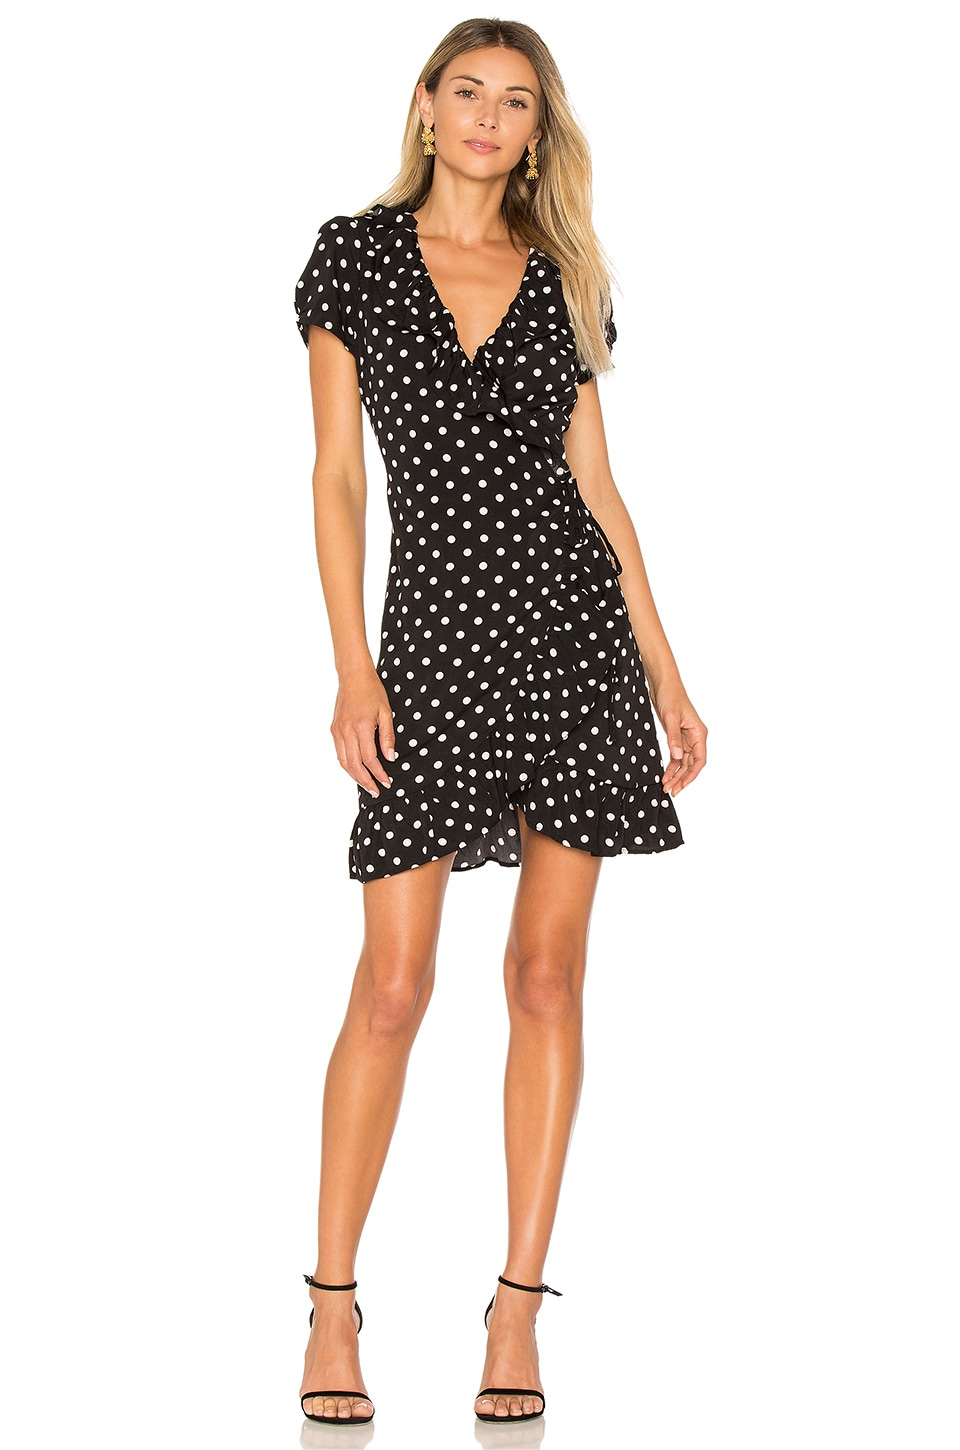 LIONESS Birkin Wrap Dress in Polka